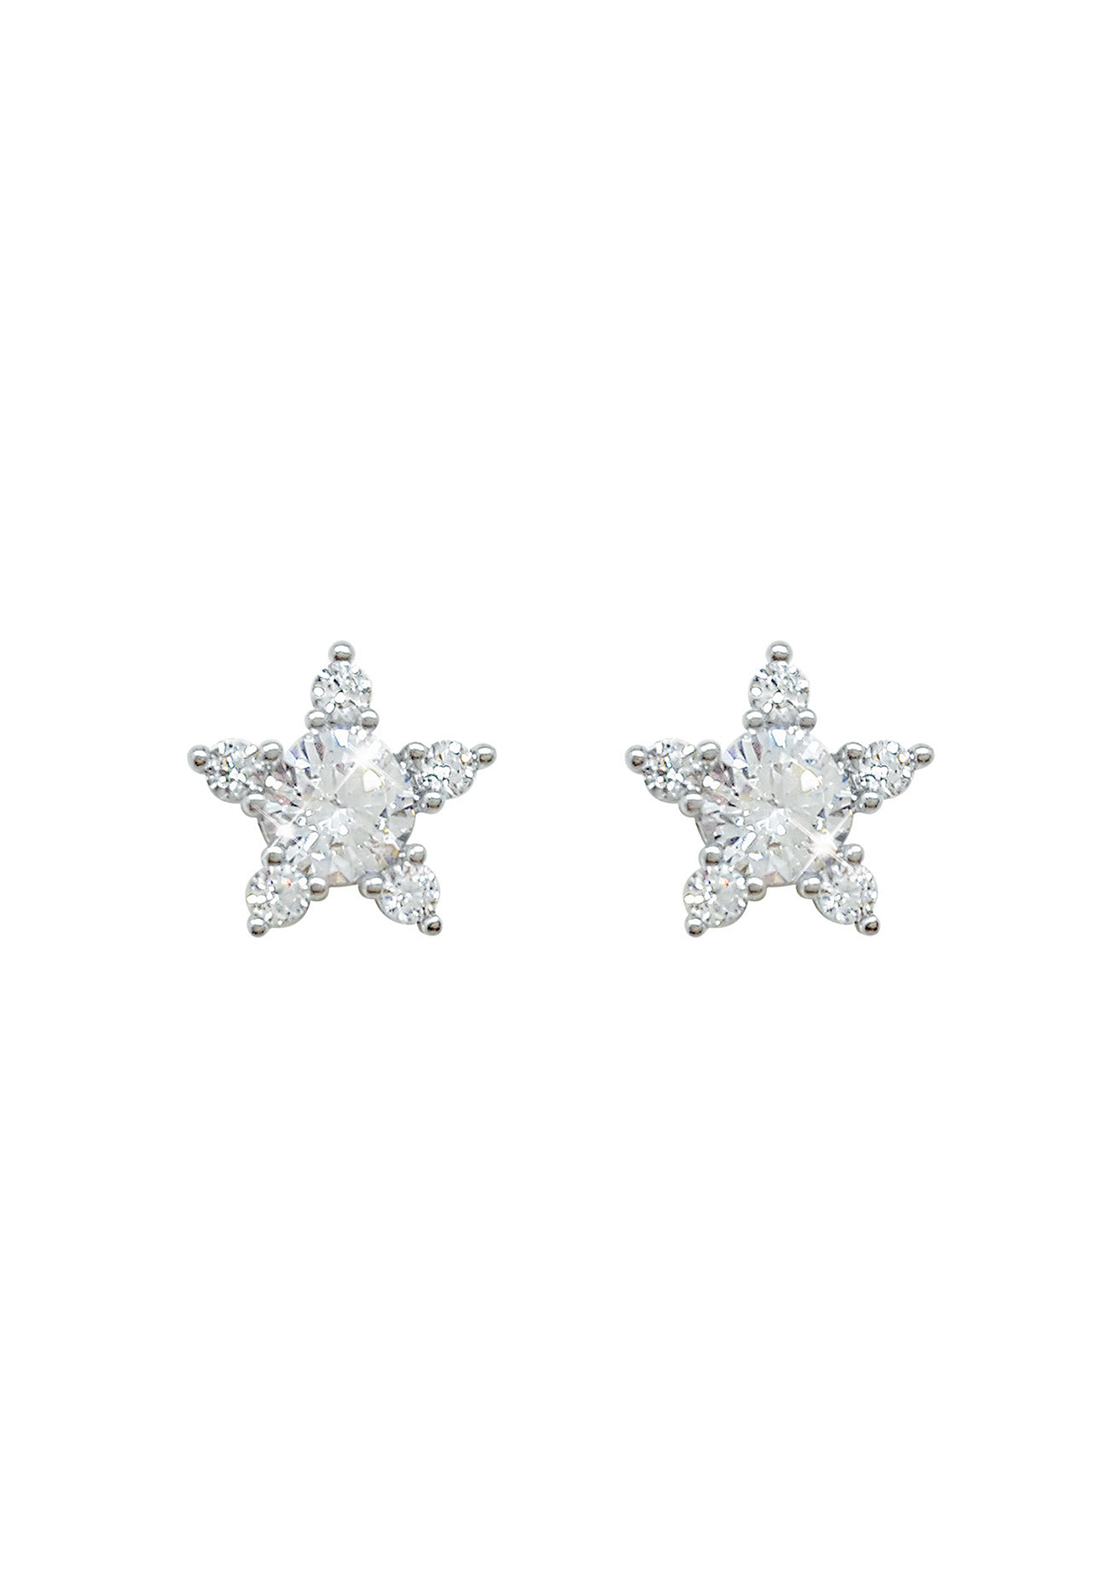 Tipperary Crystal Star Shaped 9mm Diamante Stud Earrings, Silver